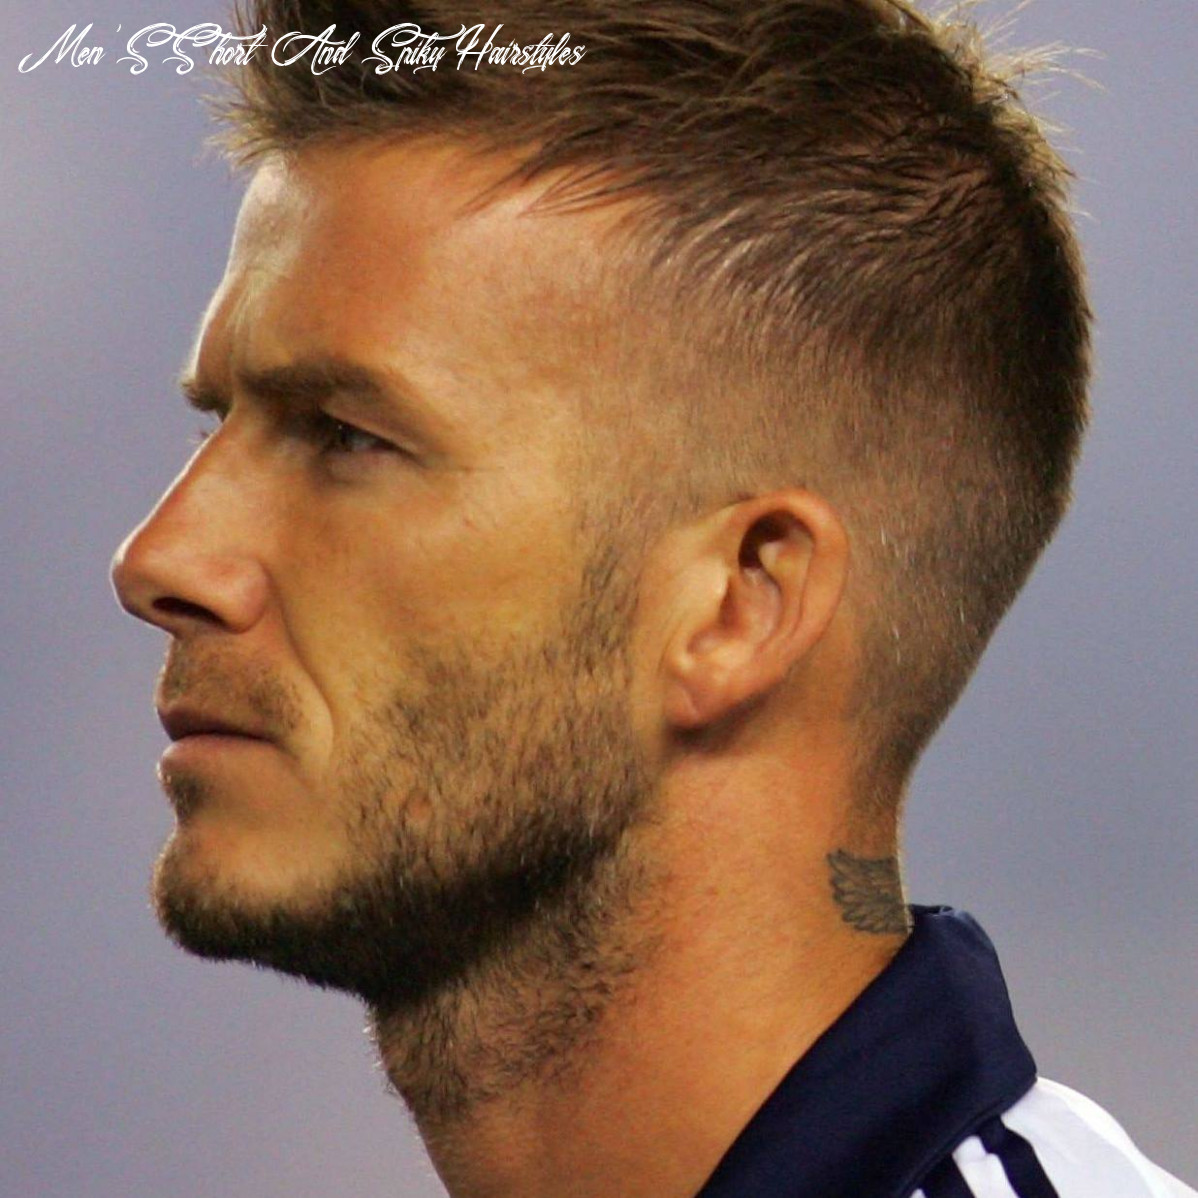 Men's Spiked Hairstyles - Classic